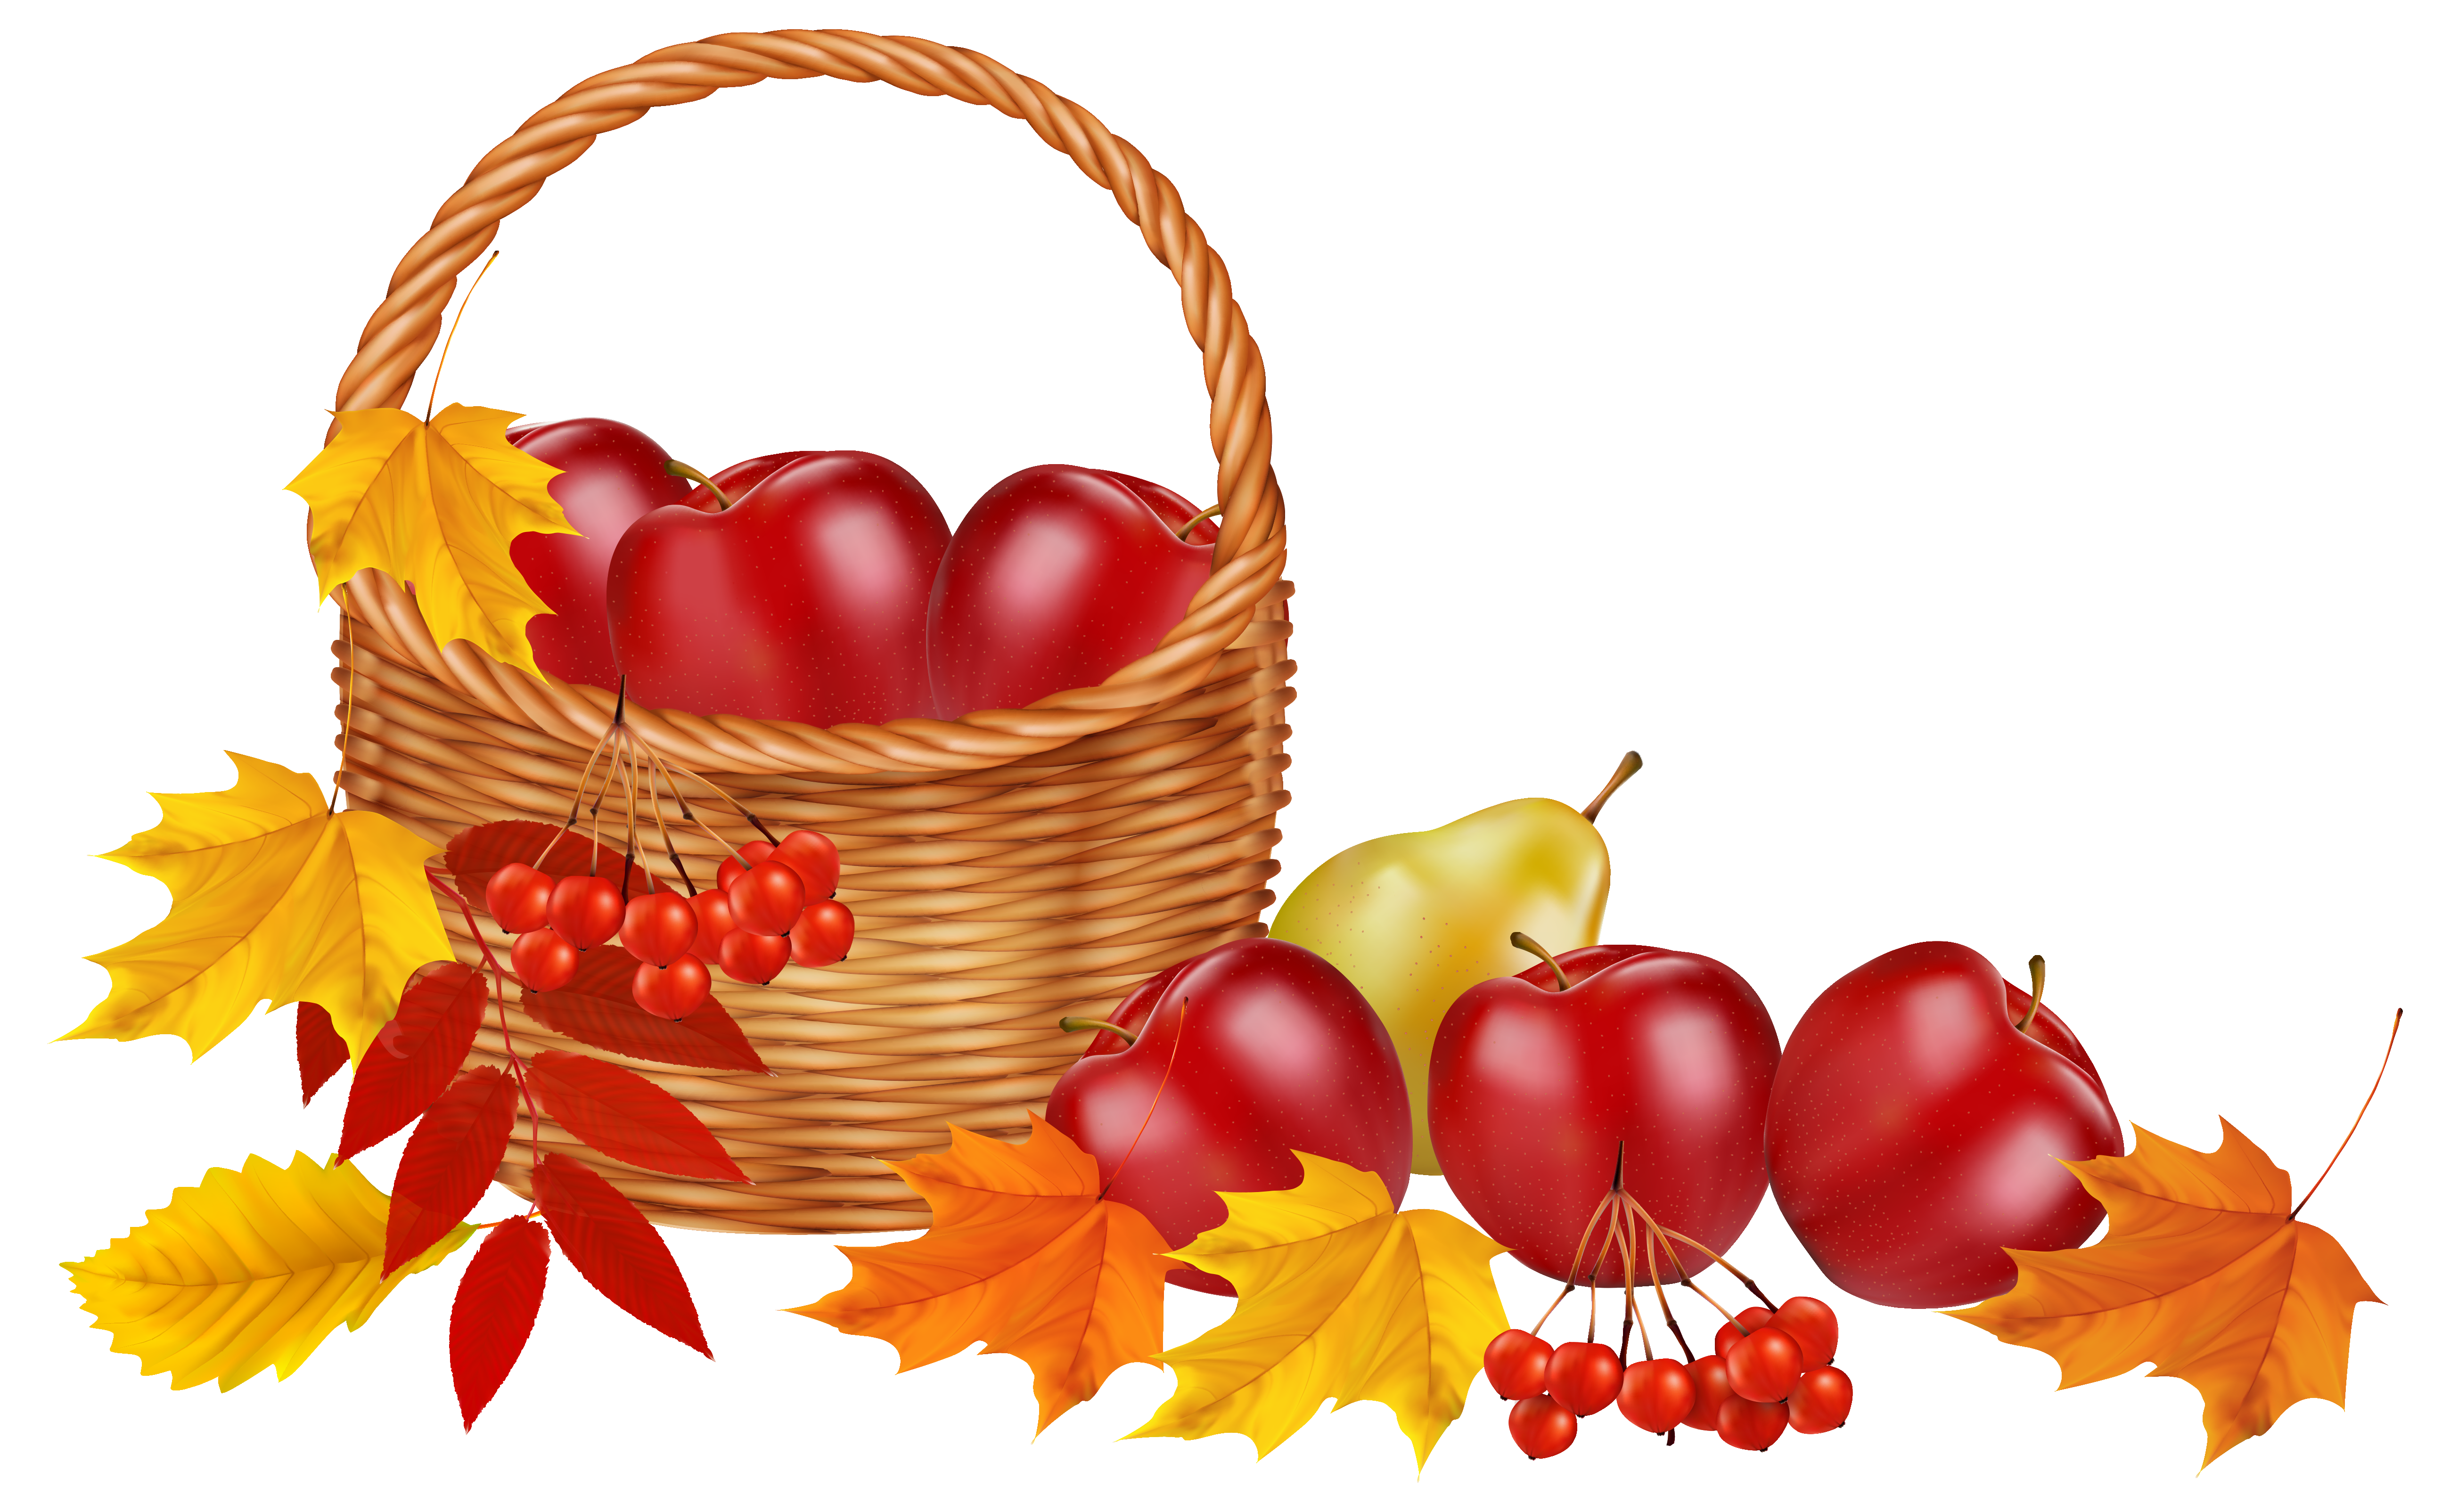 5199x3209 Basket With Fruits And Autumn Leaves Png Clipart Imageu200b Gallery